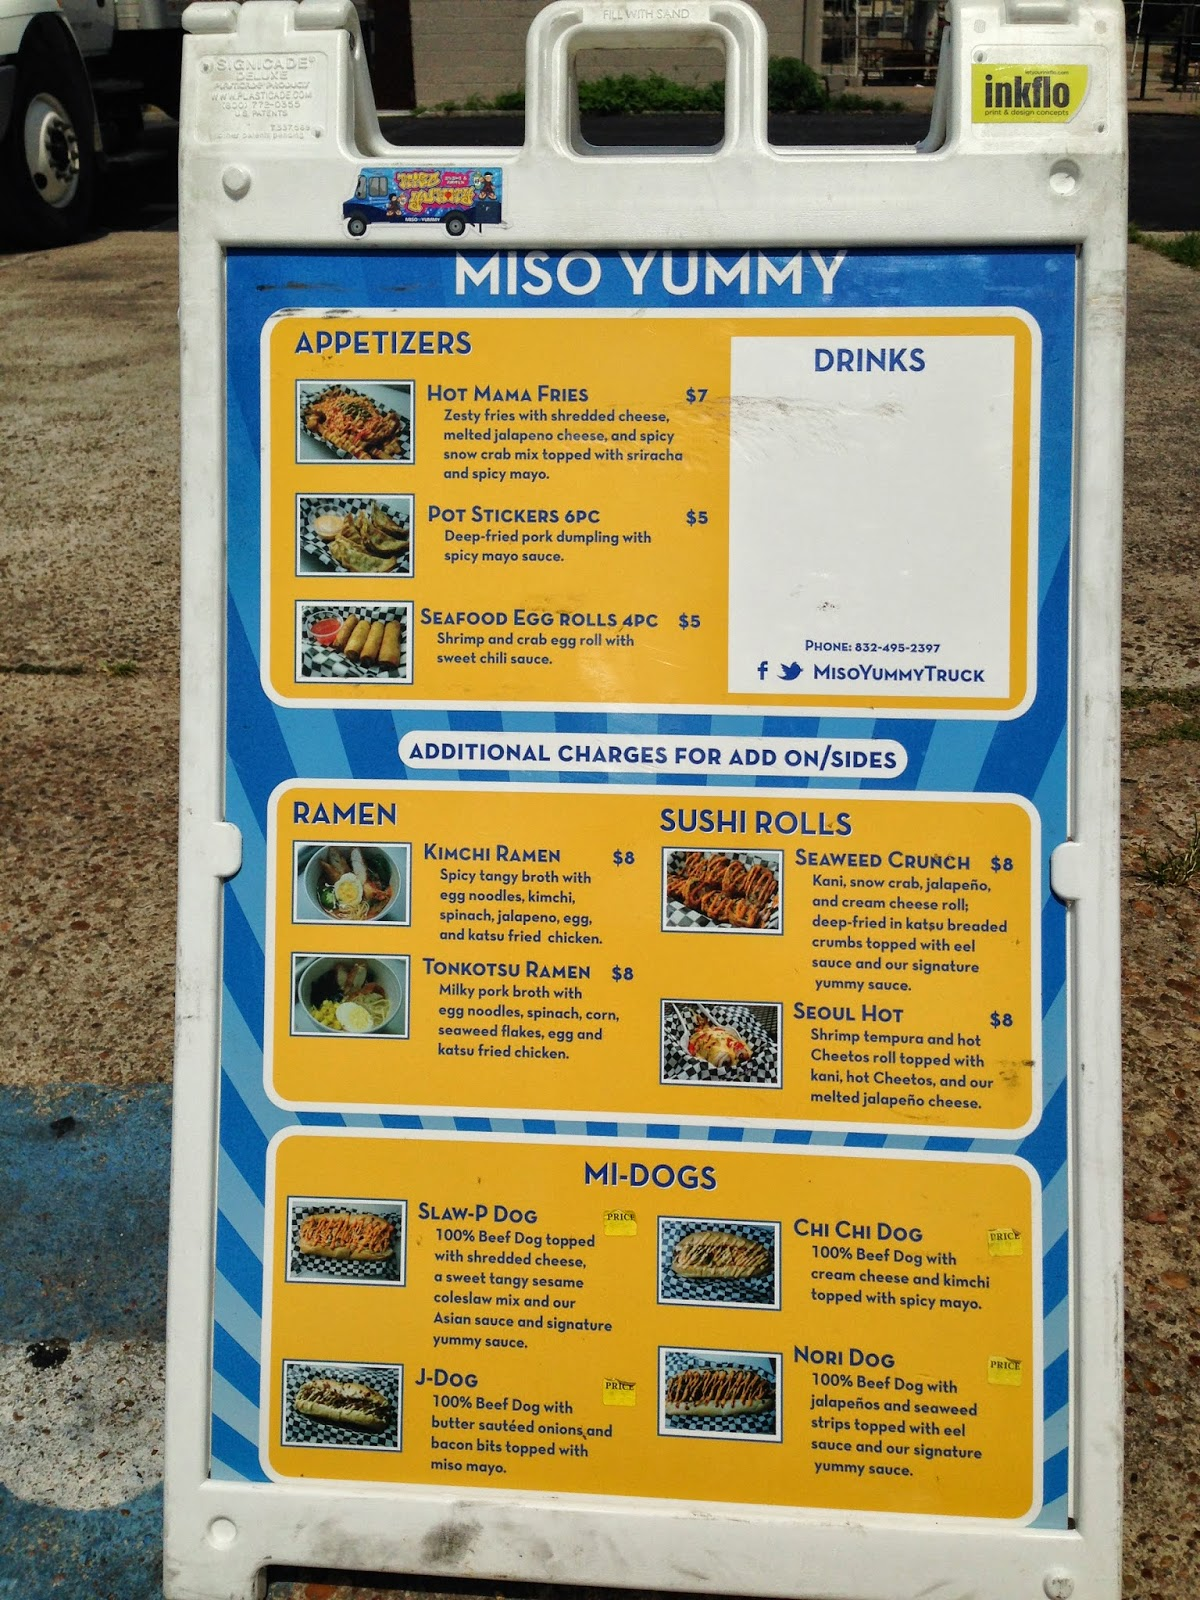 Miso Yummy Food Truck Menu